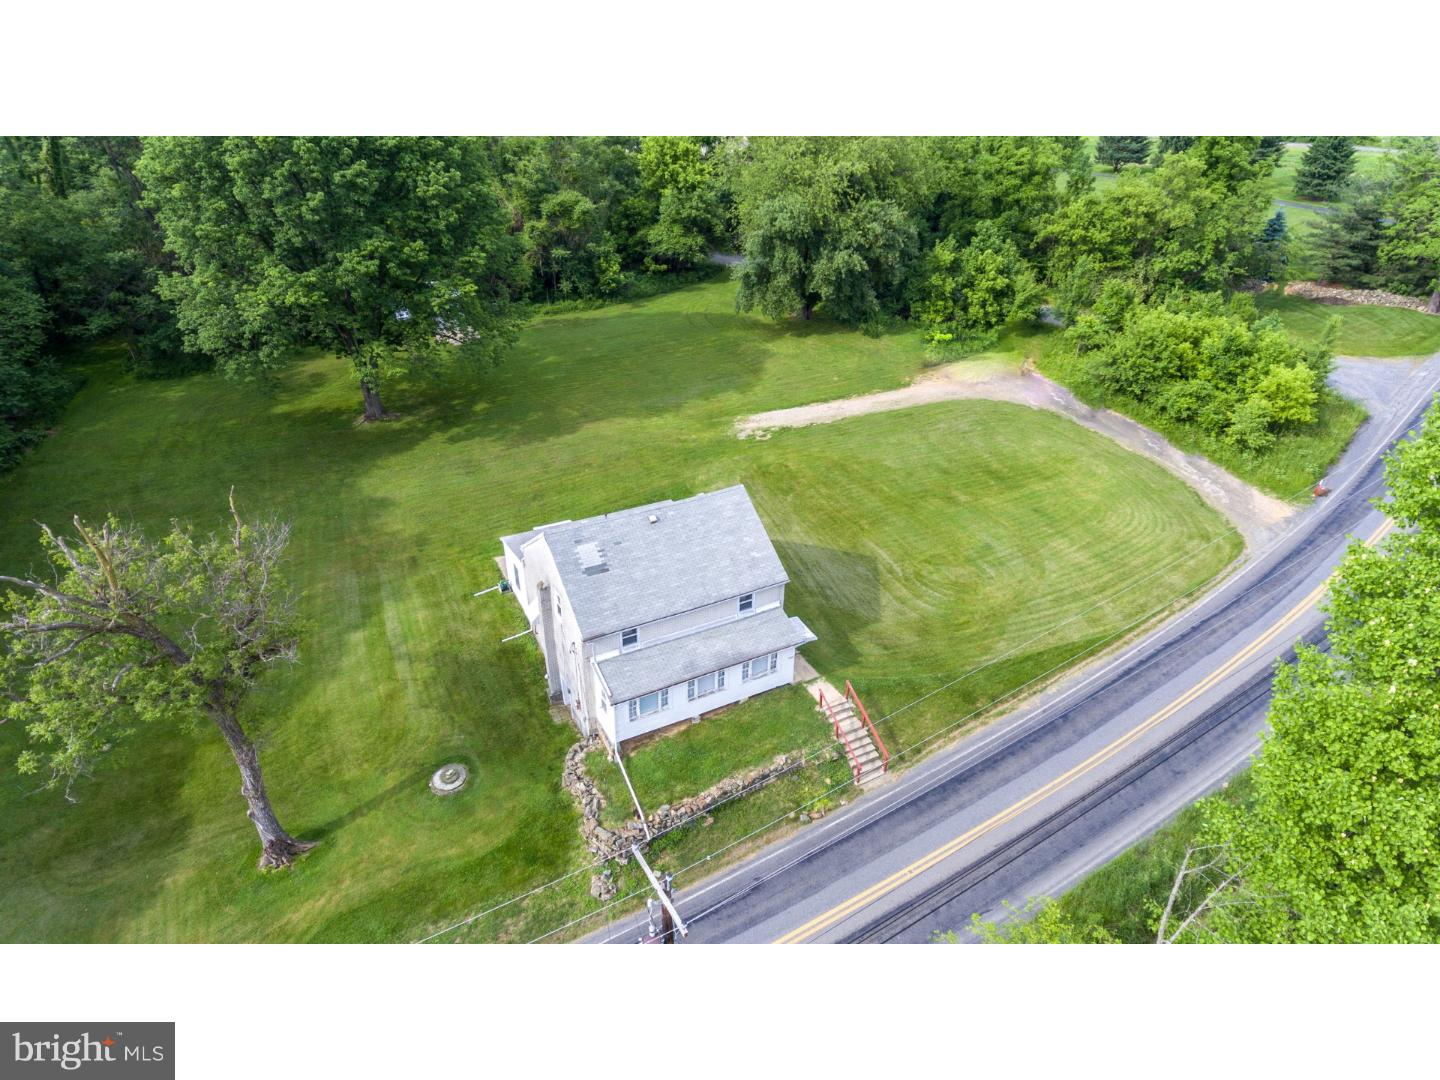 2533 APPLEBUTTER ROAD, LOWER SAUCON TWP, PA 18055